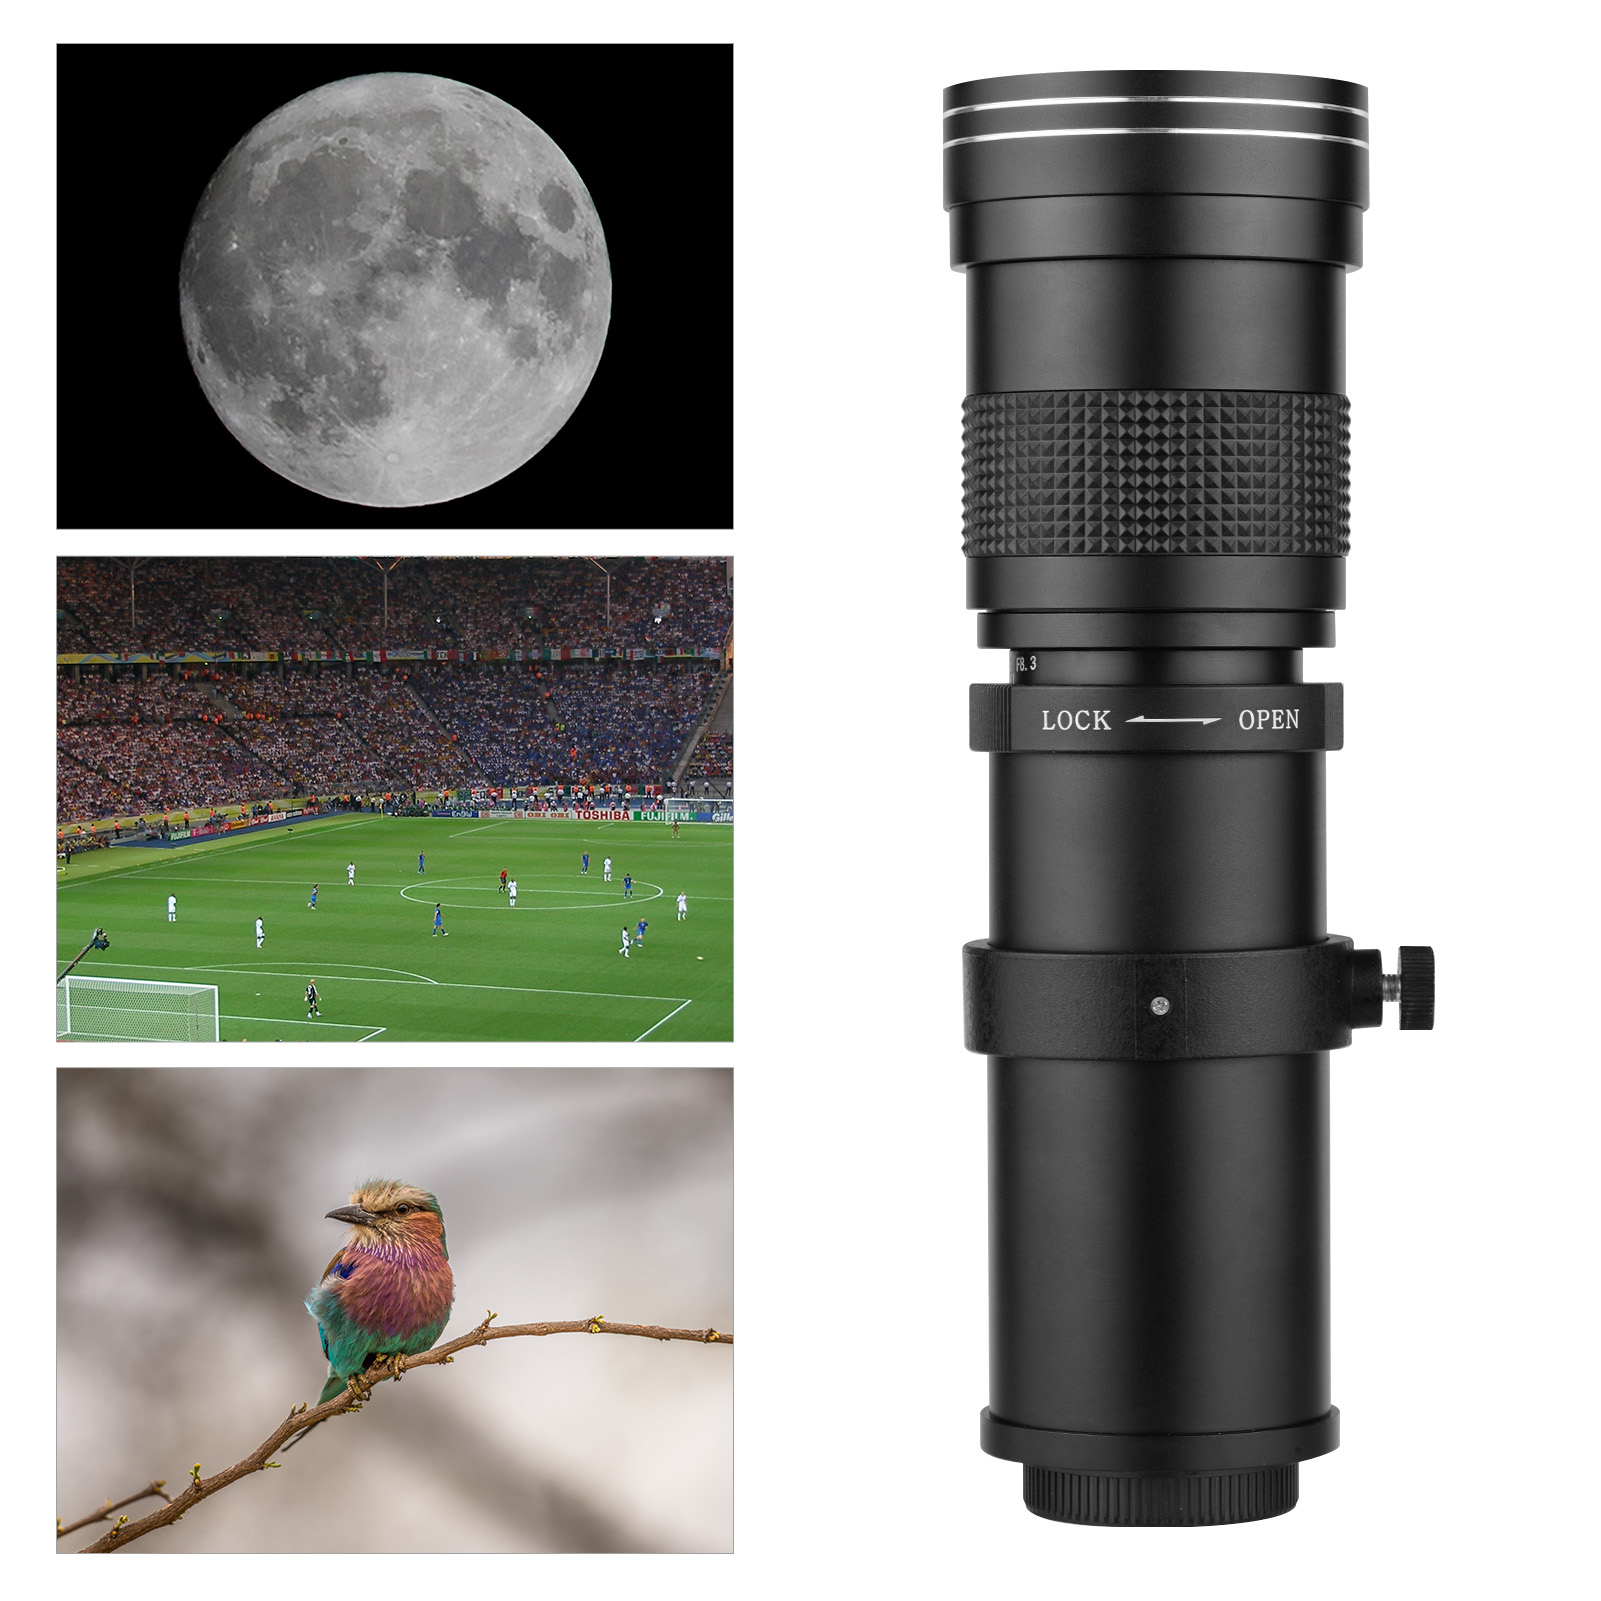 Camera Lens MF Super Telephoto Zoom Lens F/8.3-16 420-800mm T Mount with for Canon Nikon Sony Fujifilm Olympus Cameras Lens